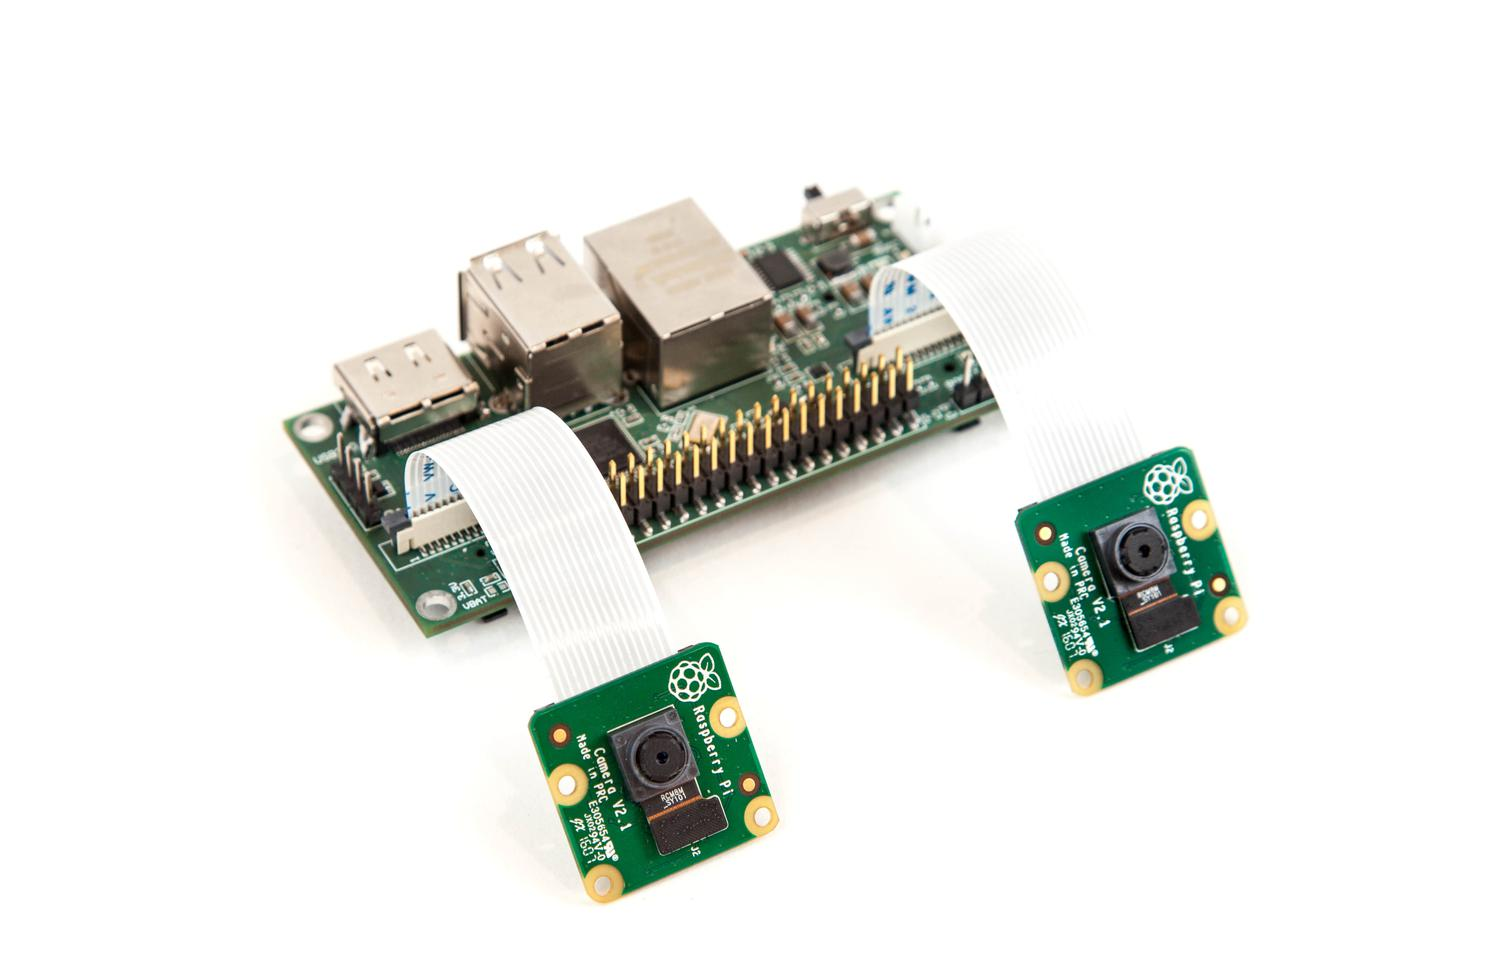 Virt2real Stereoscopic Camera kit with Raspberry Pi CM3+